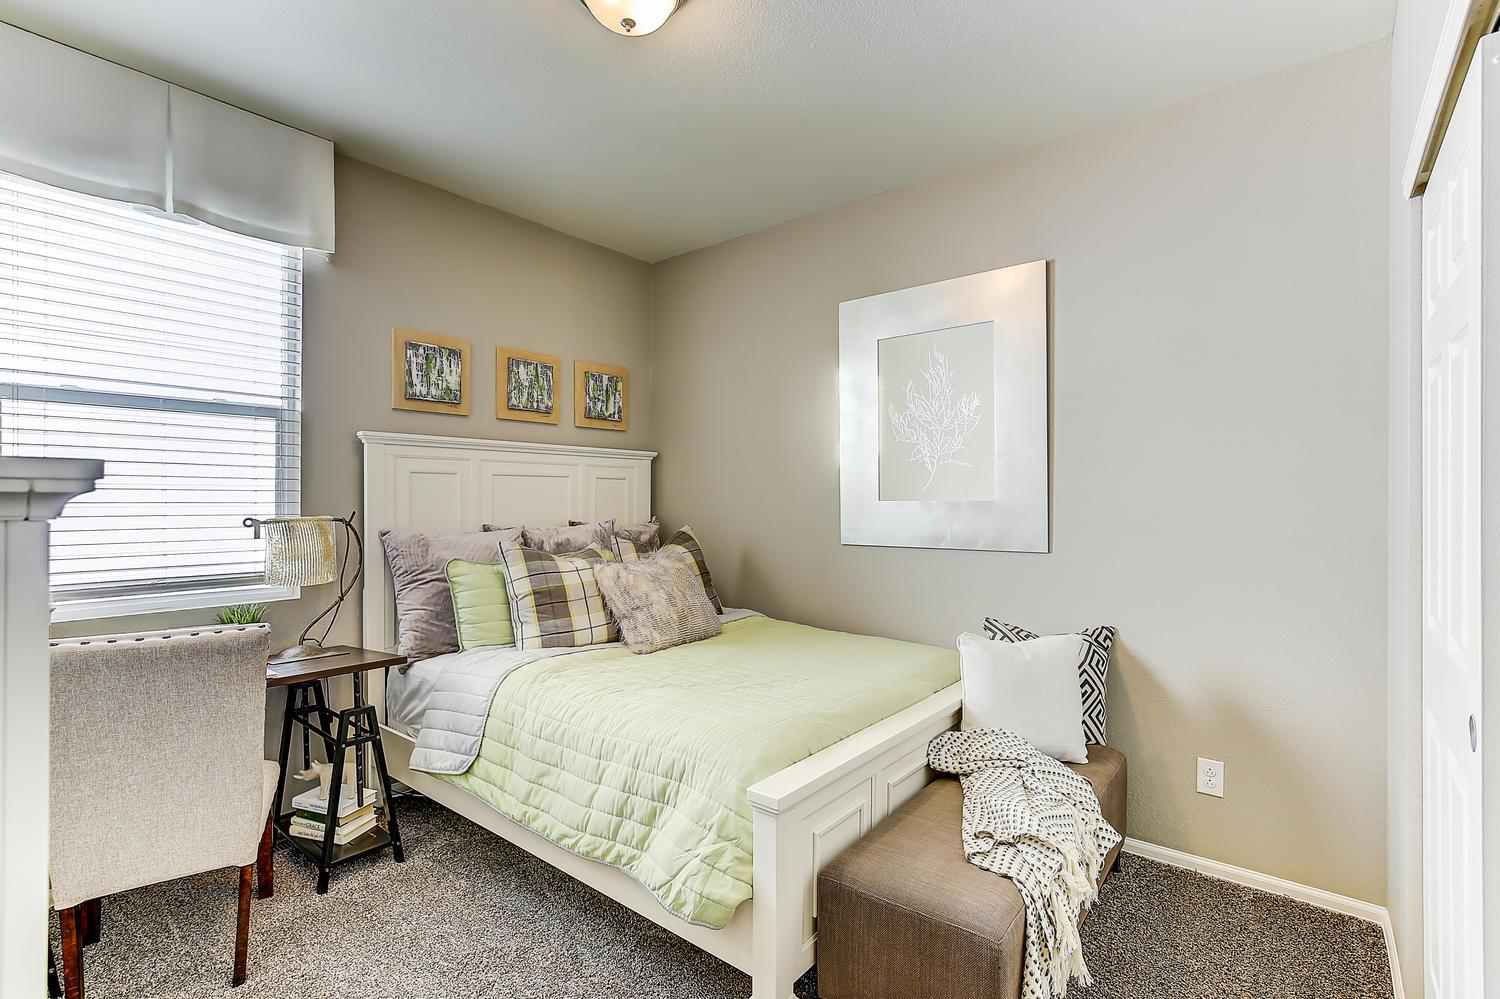 Bedroom featured in the NEUVILLE By D.R. Horton in Greeley, CO